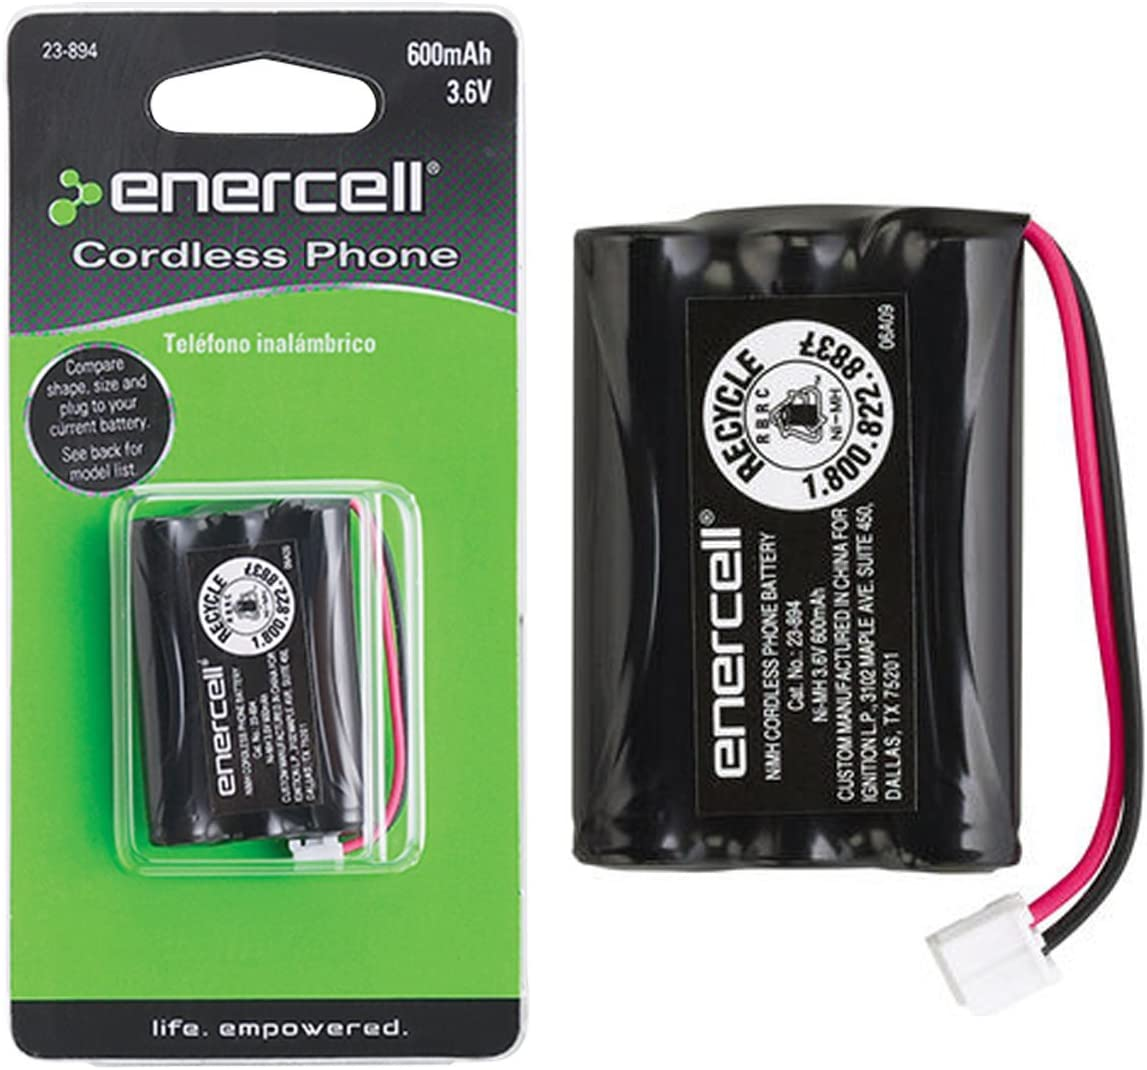 Enercell 3.6V 600mAh Ni-MH Cordless Max 56% OFF 2300894 E Phone Easy-to-use by Battery